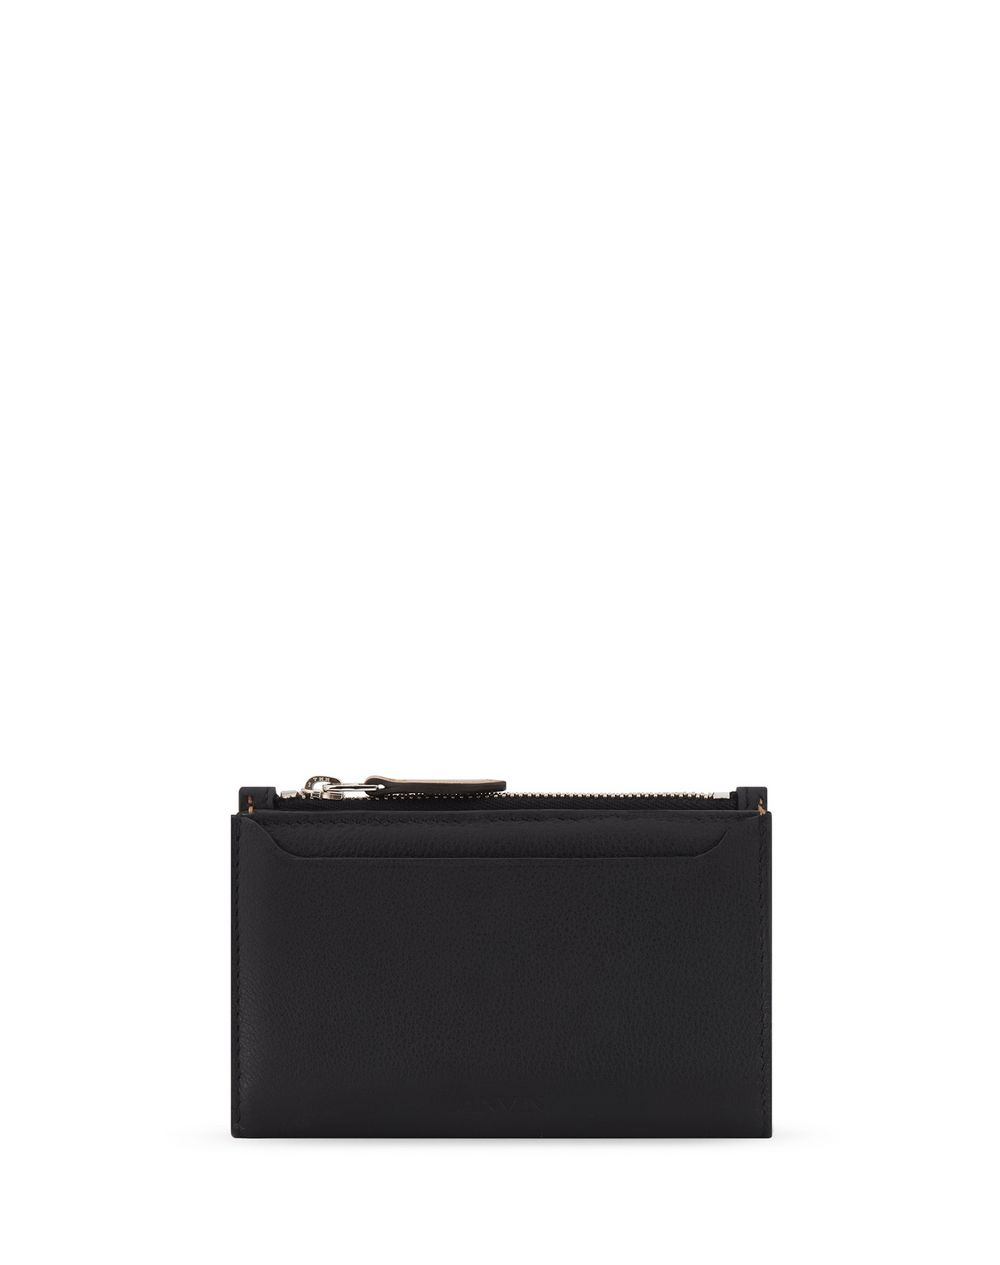 ZIPPED CARD HOLDER LM  - Lanvin